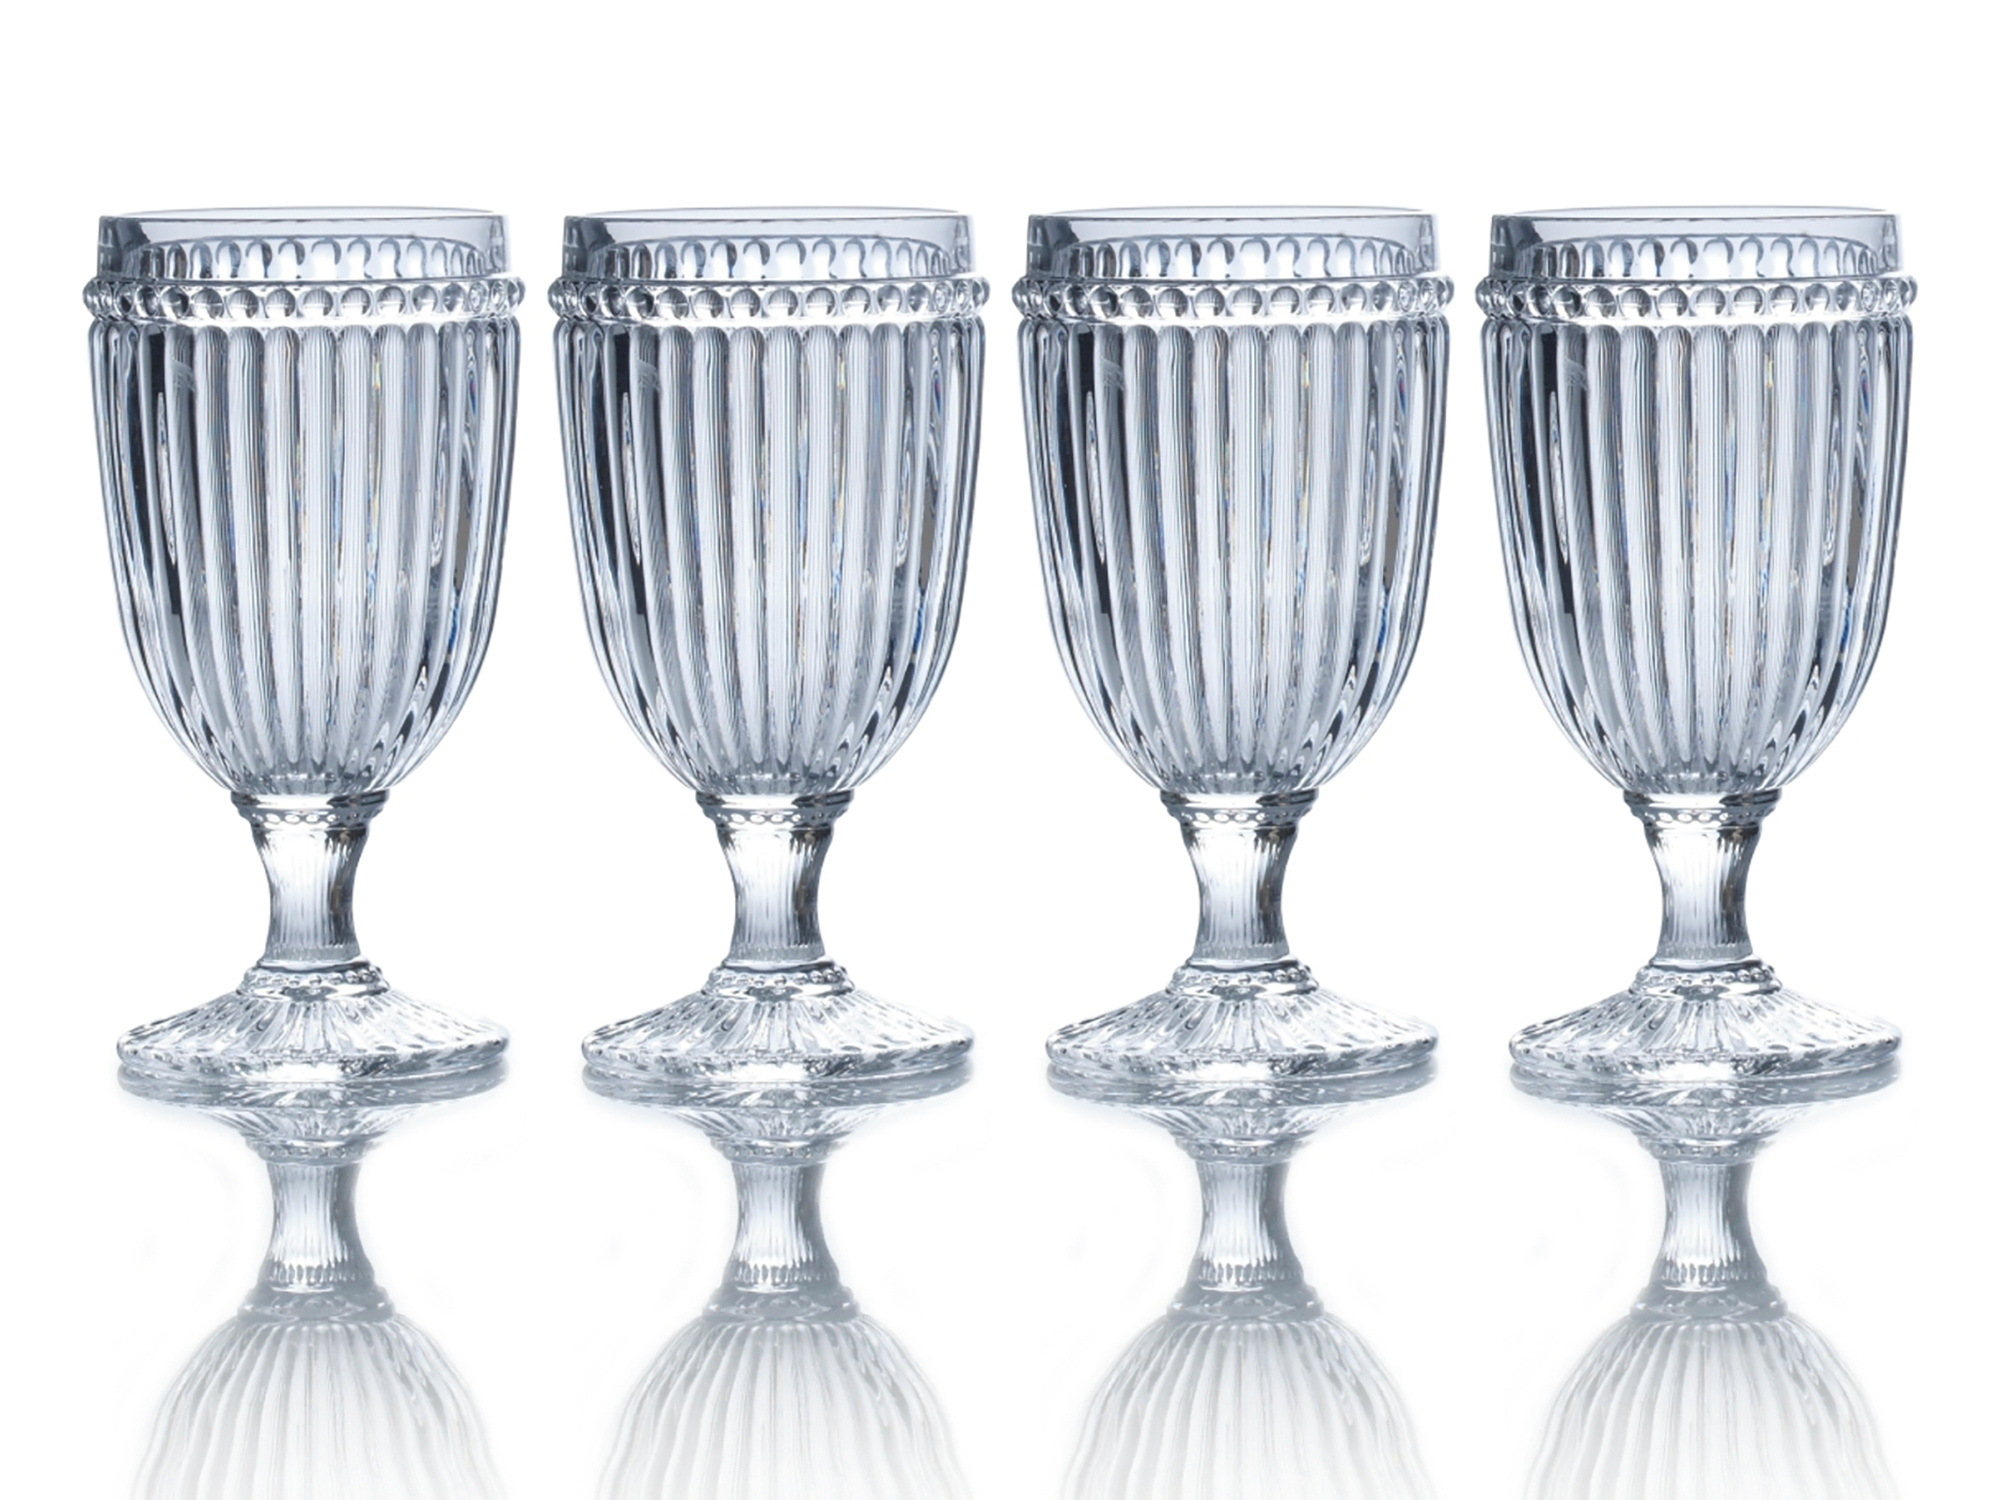 Mikasa Italian Countryside Set Of 4 Iced Beverage 13Oz Glasses Clear